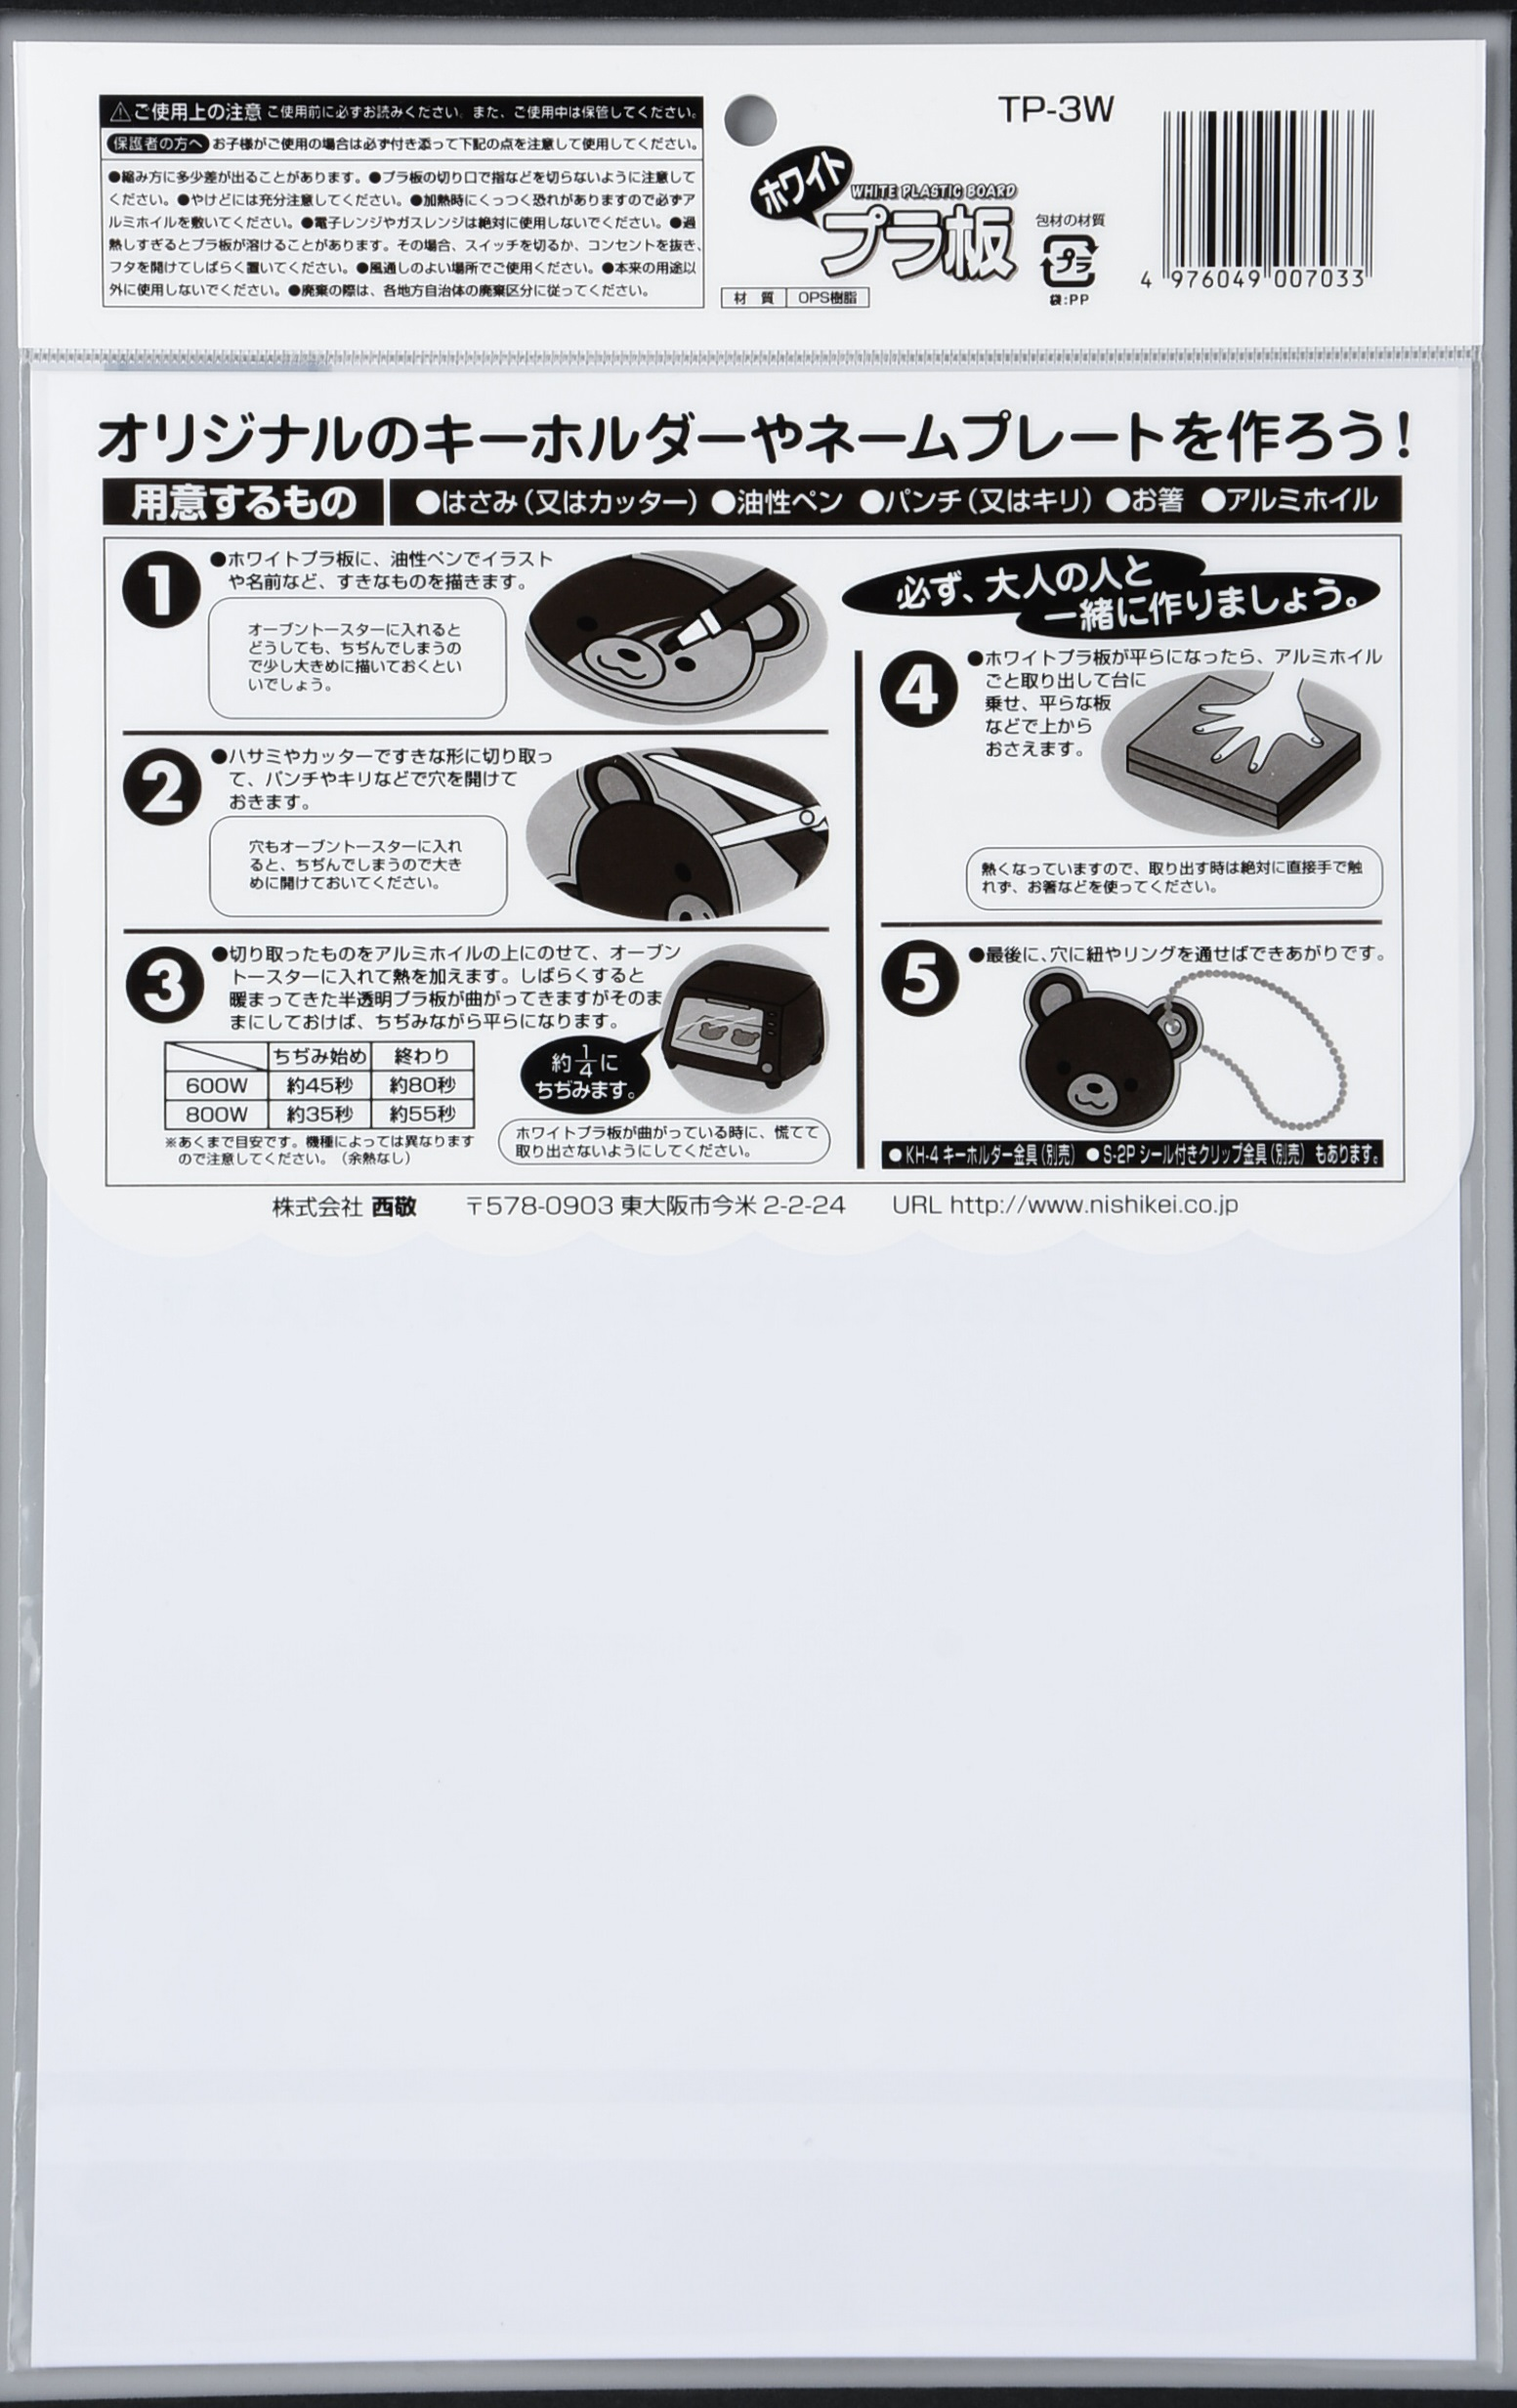 http://www.nishikei.co.jp/new_products/TP3W%E8%A3%8F.jpg